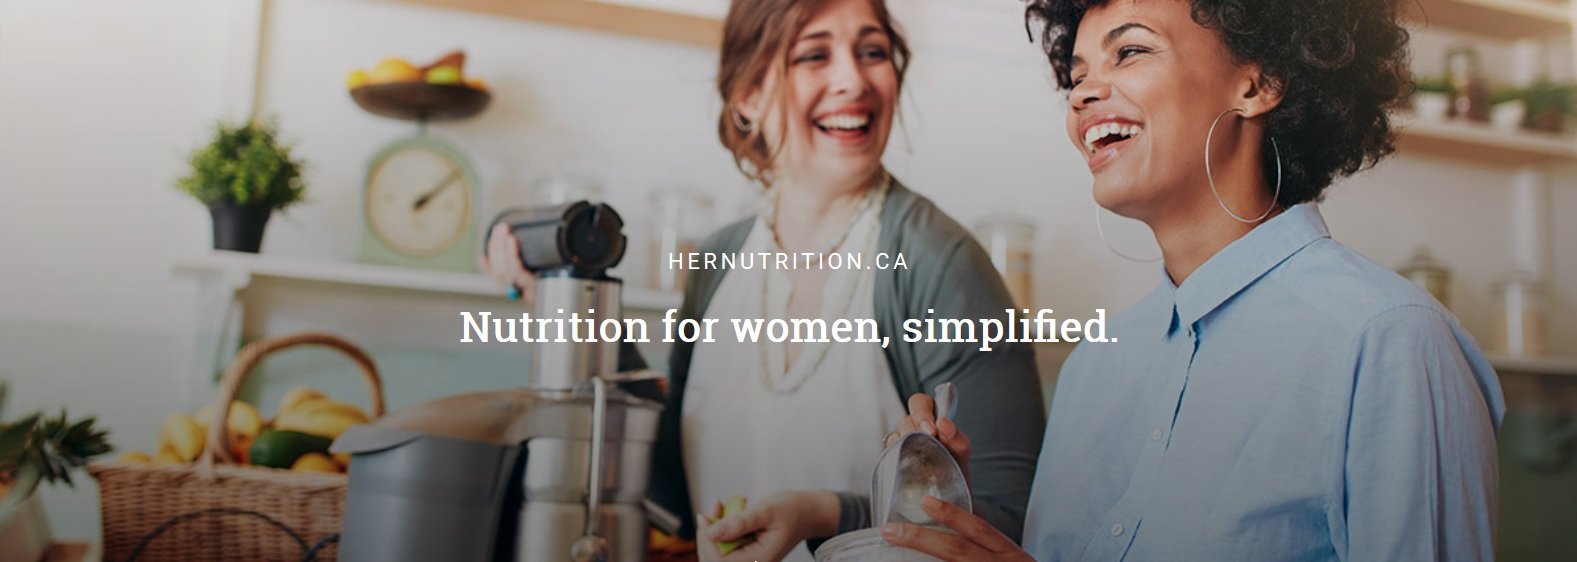 Launch of HERNUTRITION.CA – a website devoted to female nutrition